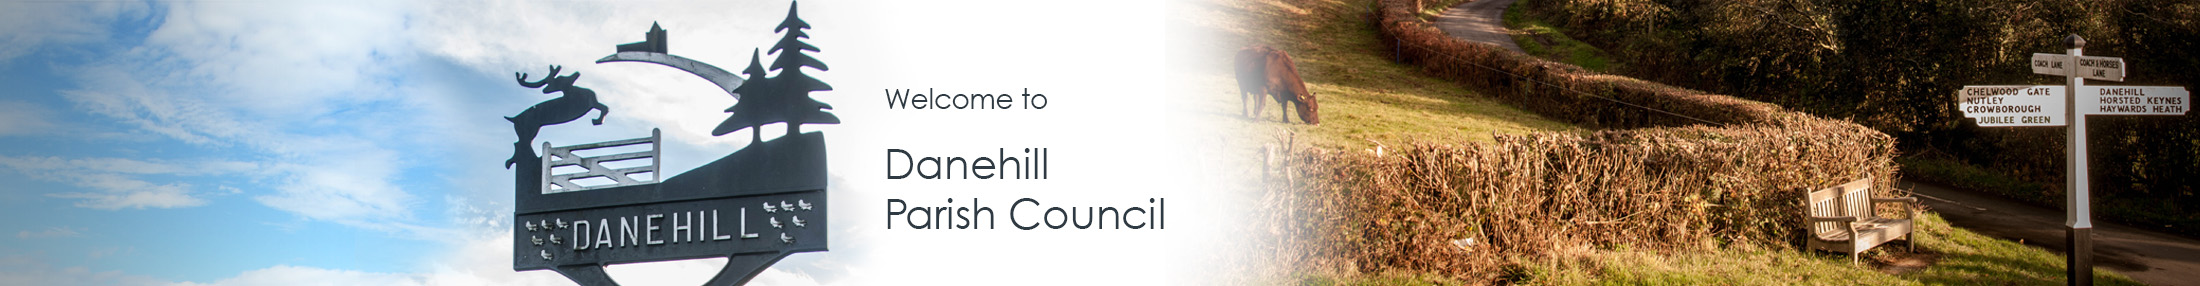 Header Image for Danehill Parish Council